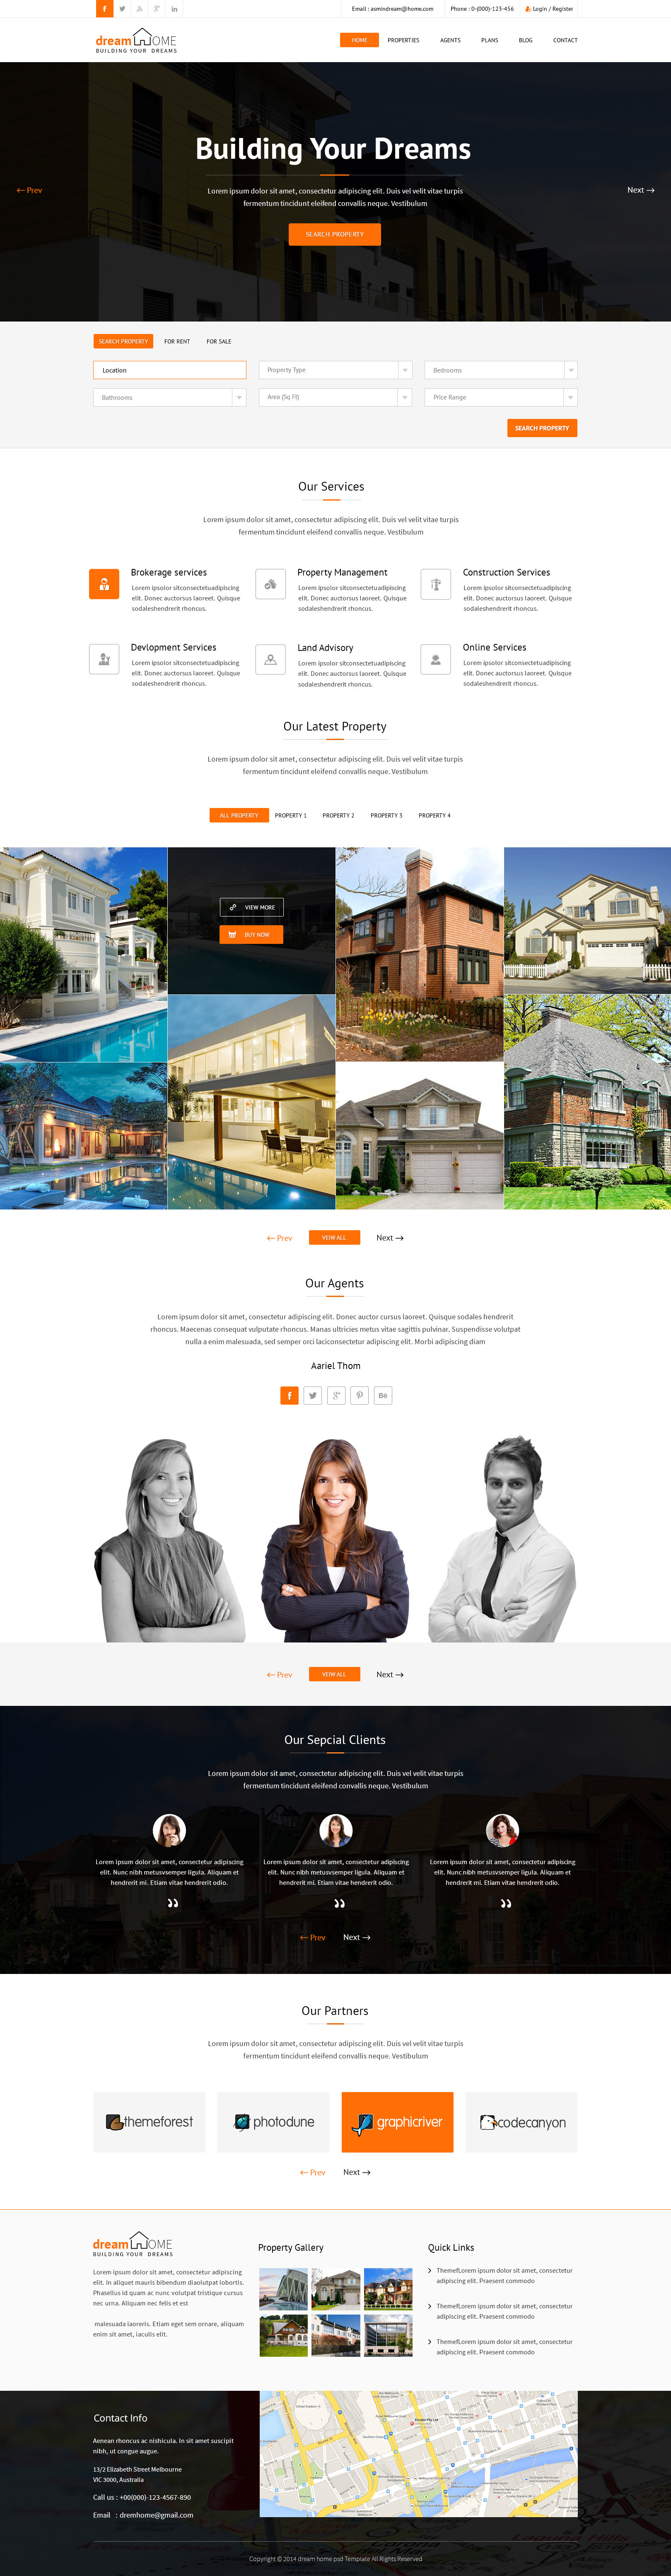 dream home real estate psd template by kamleshyadav themeforest dream home real estate psd template